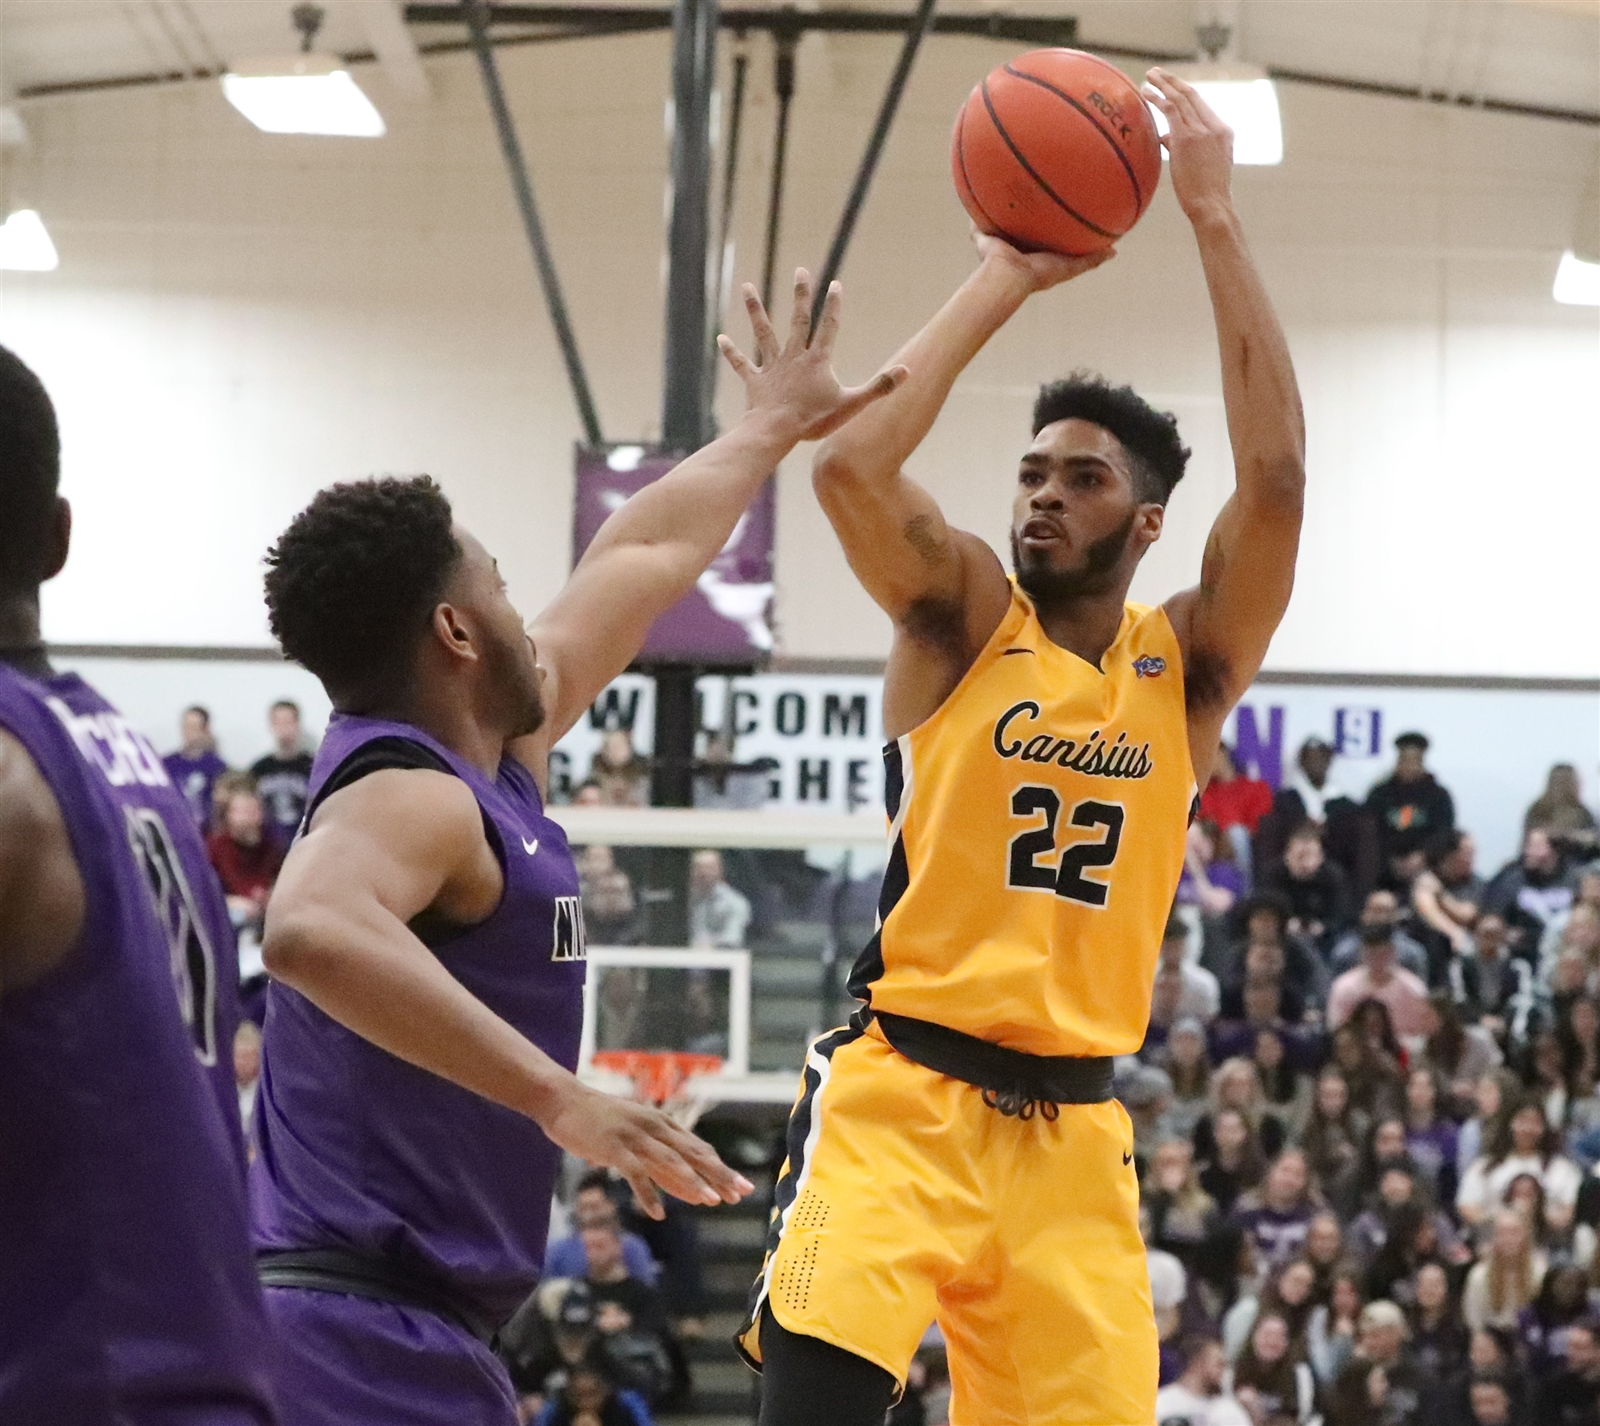 Poor second-half shooting sinks Canisius in loss to Manhattan